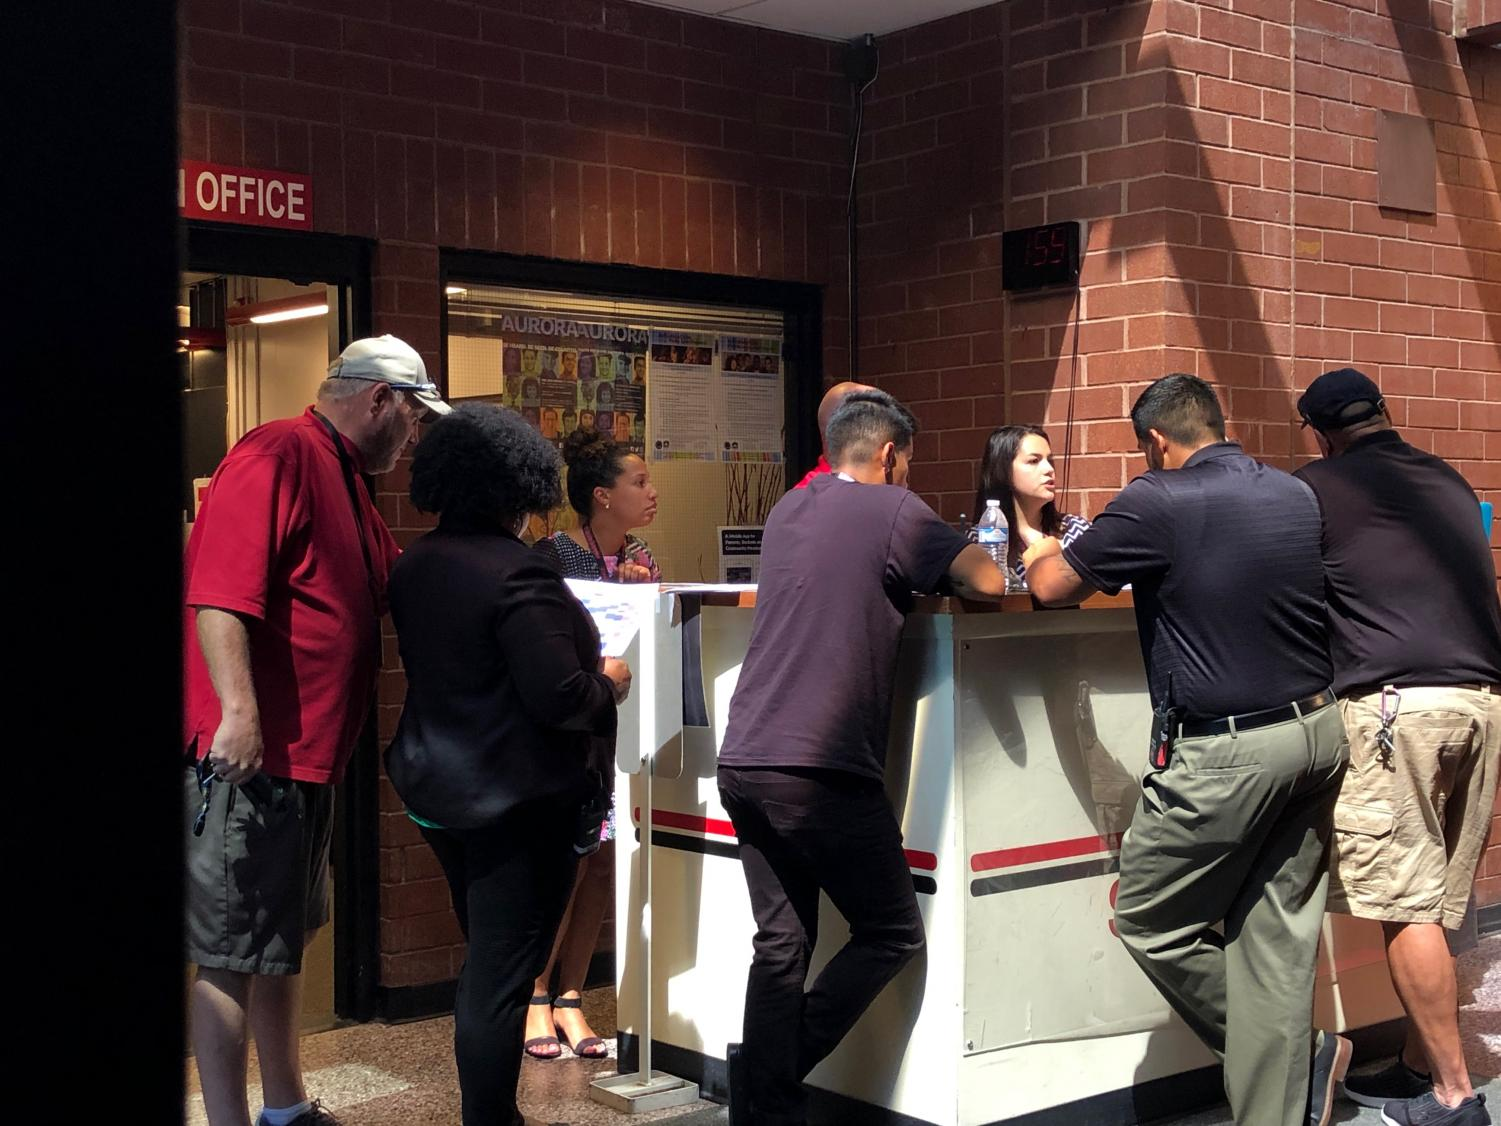 Some of the security administration meet at the front lobby desk discussing matters. Many watch the halls and rotate through checking different areas of the school at different times. (Stephanie Pickens)